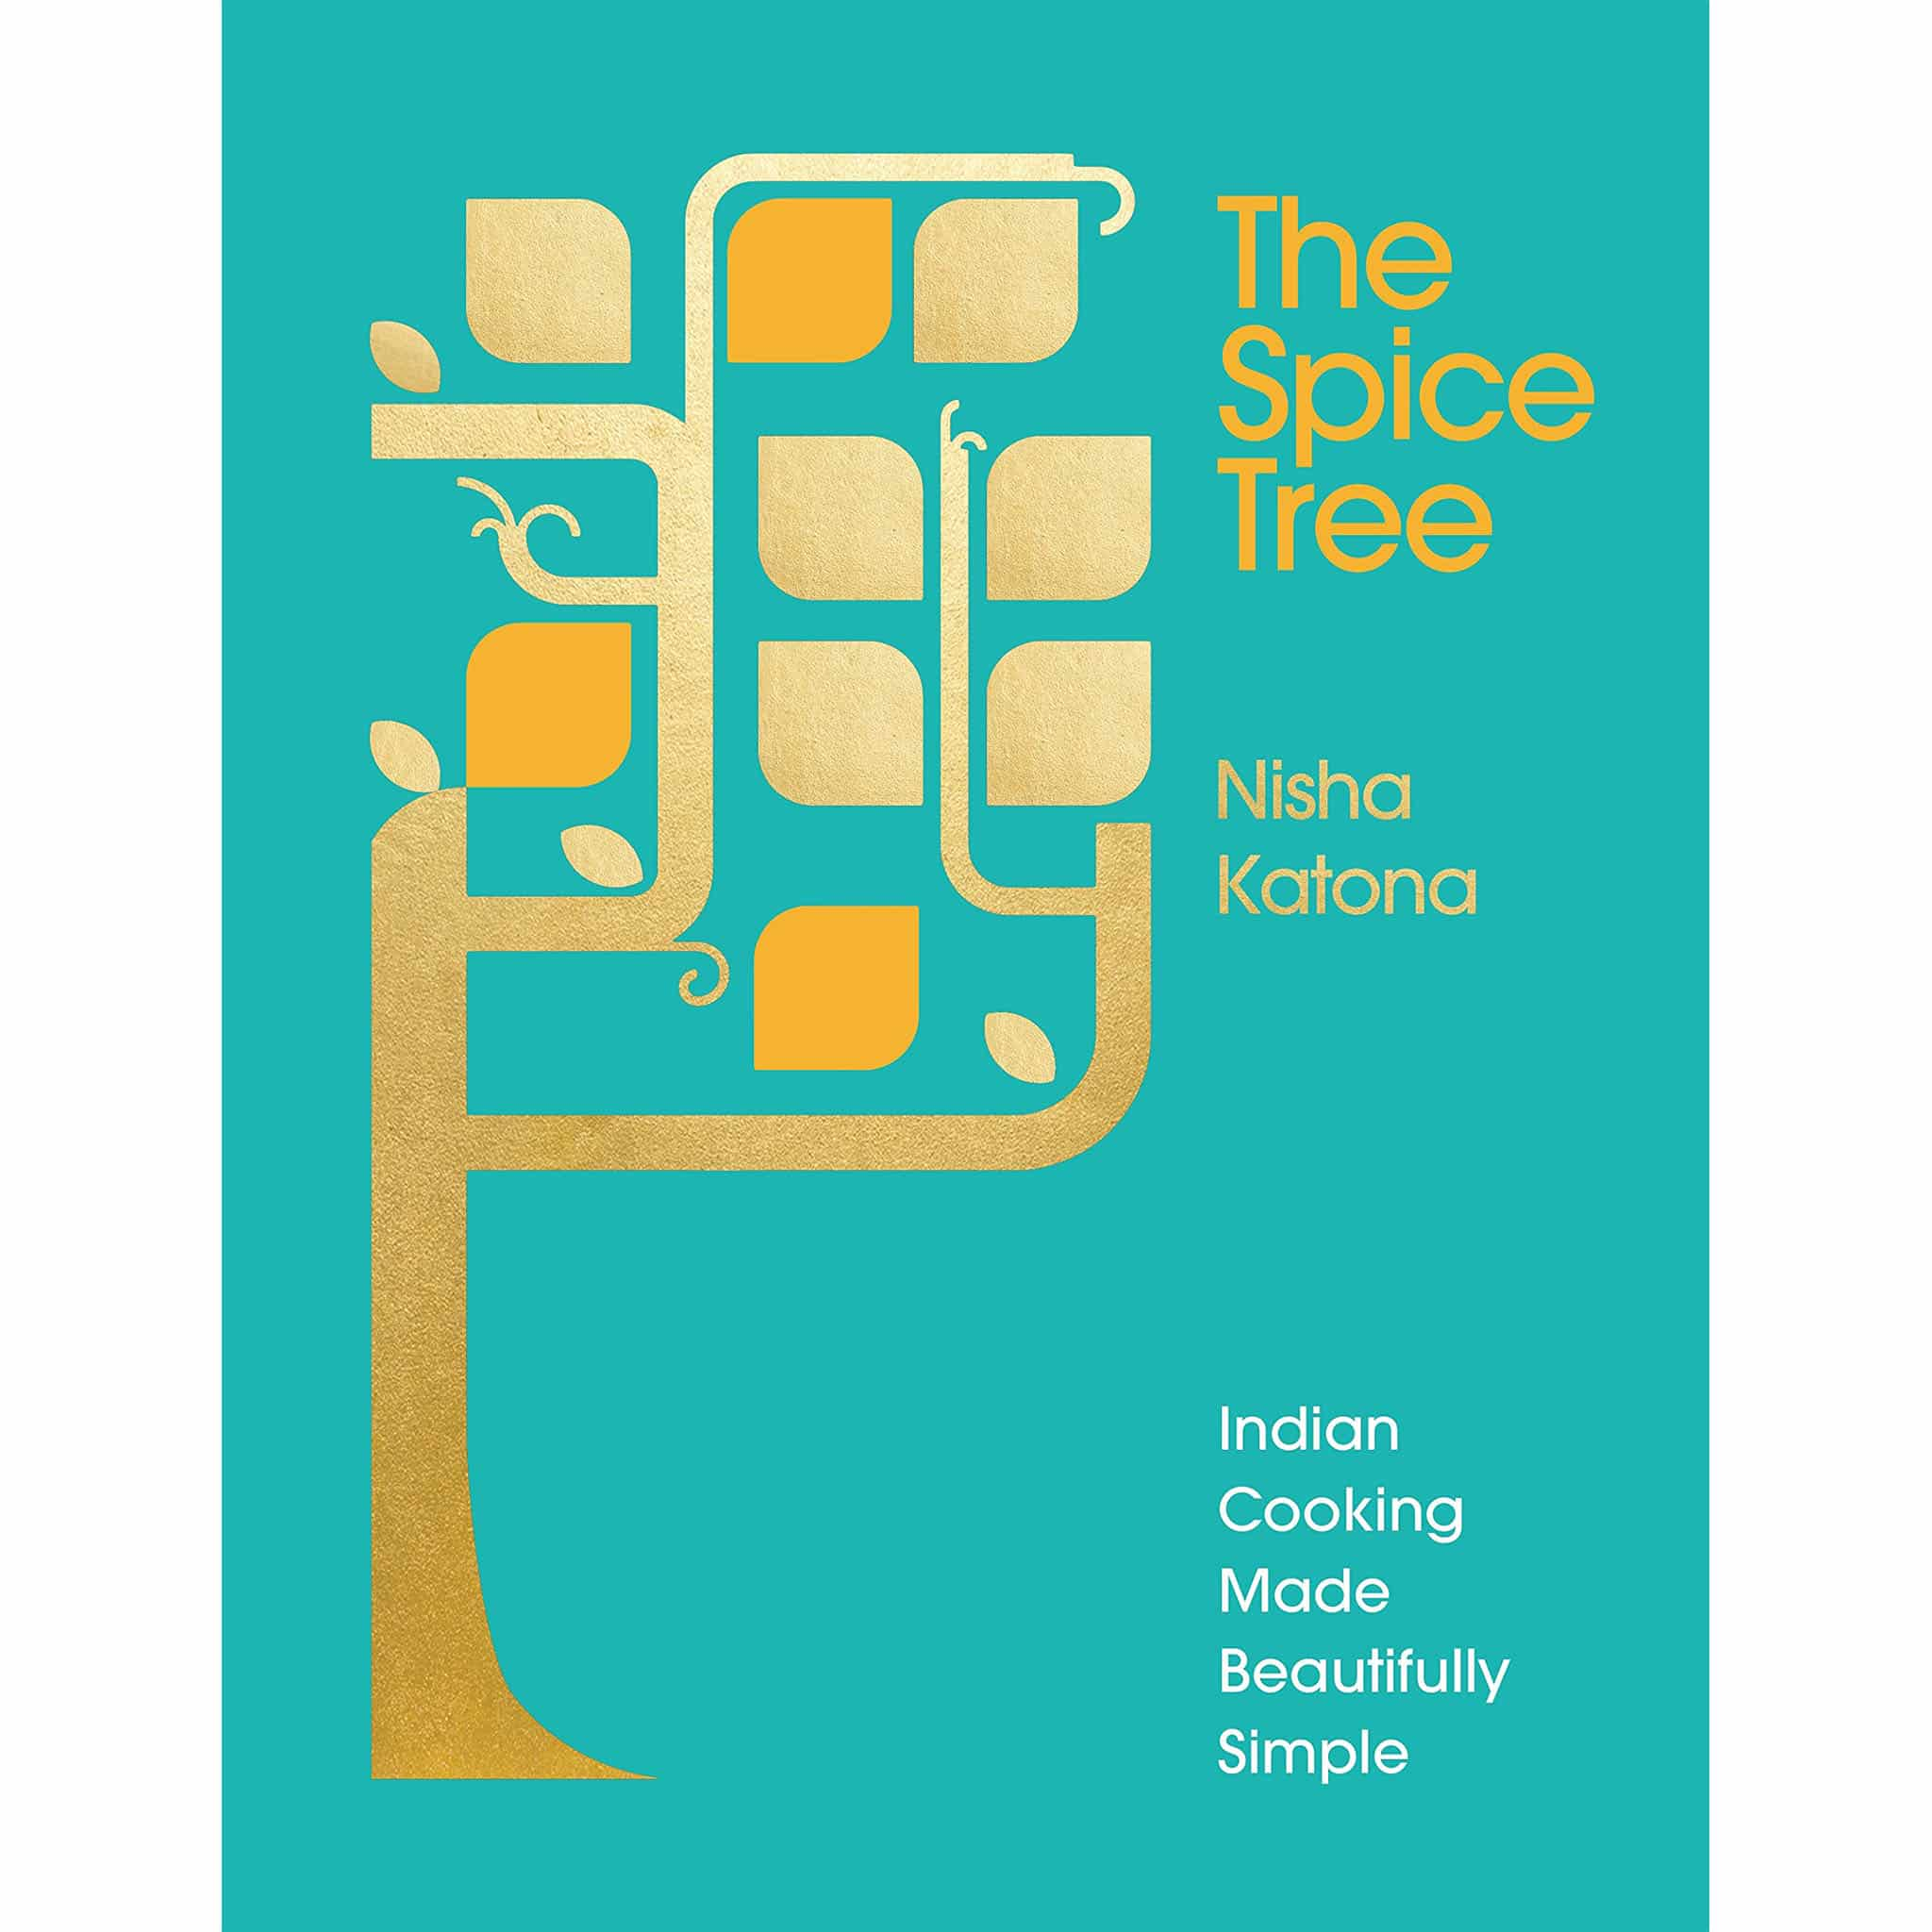 The Spice Tree by Nisha Katona